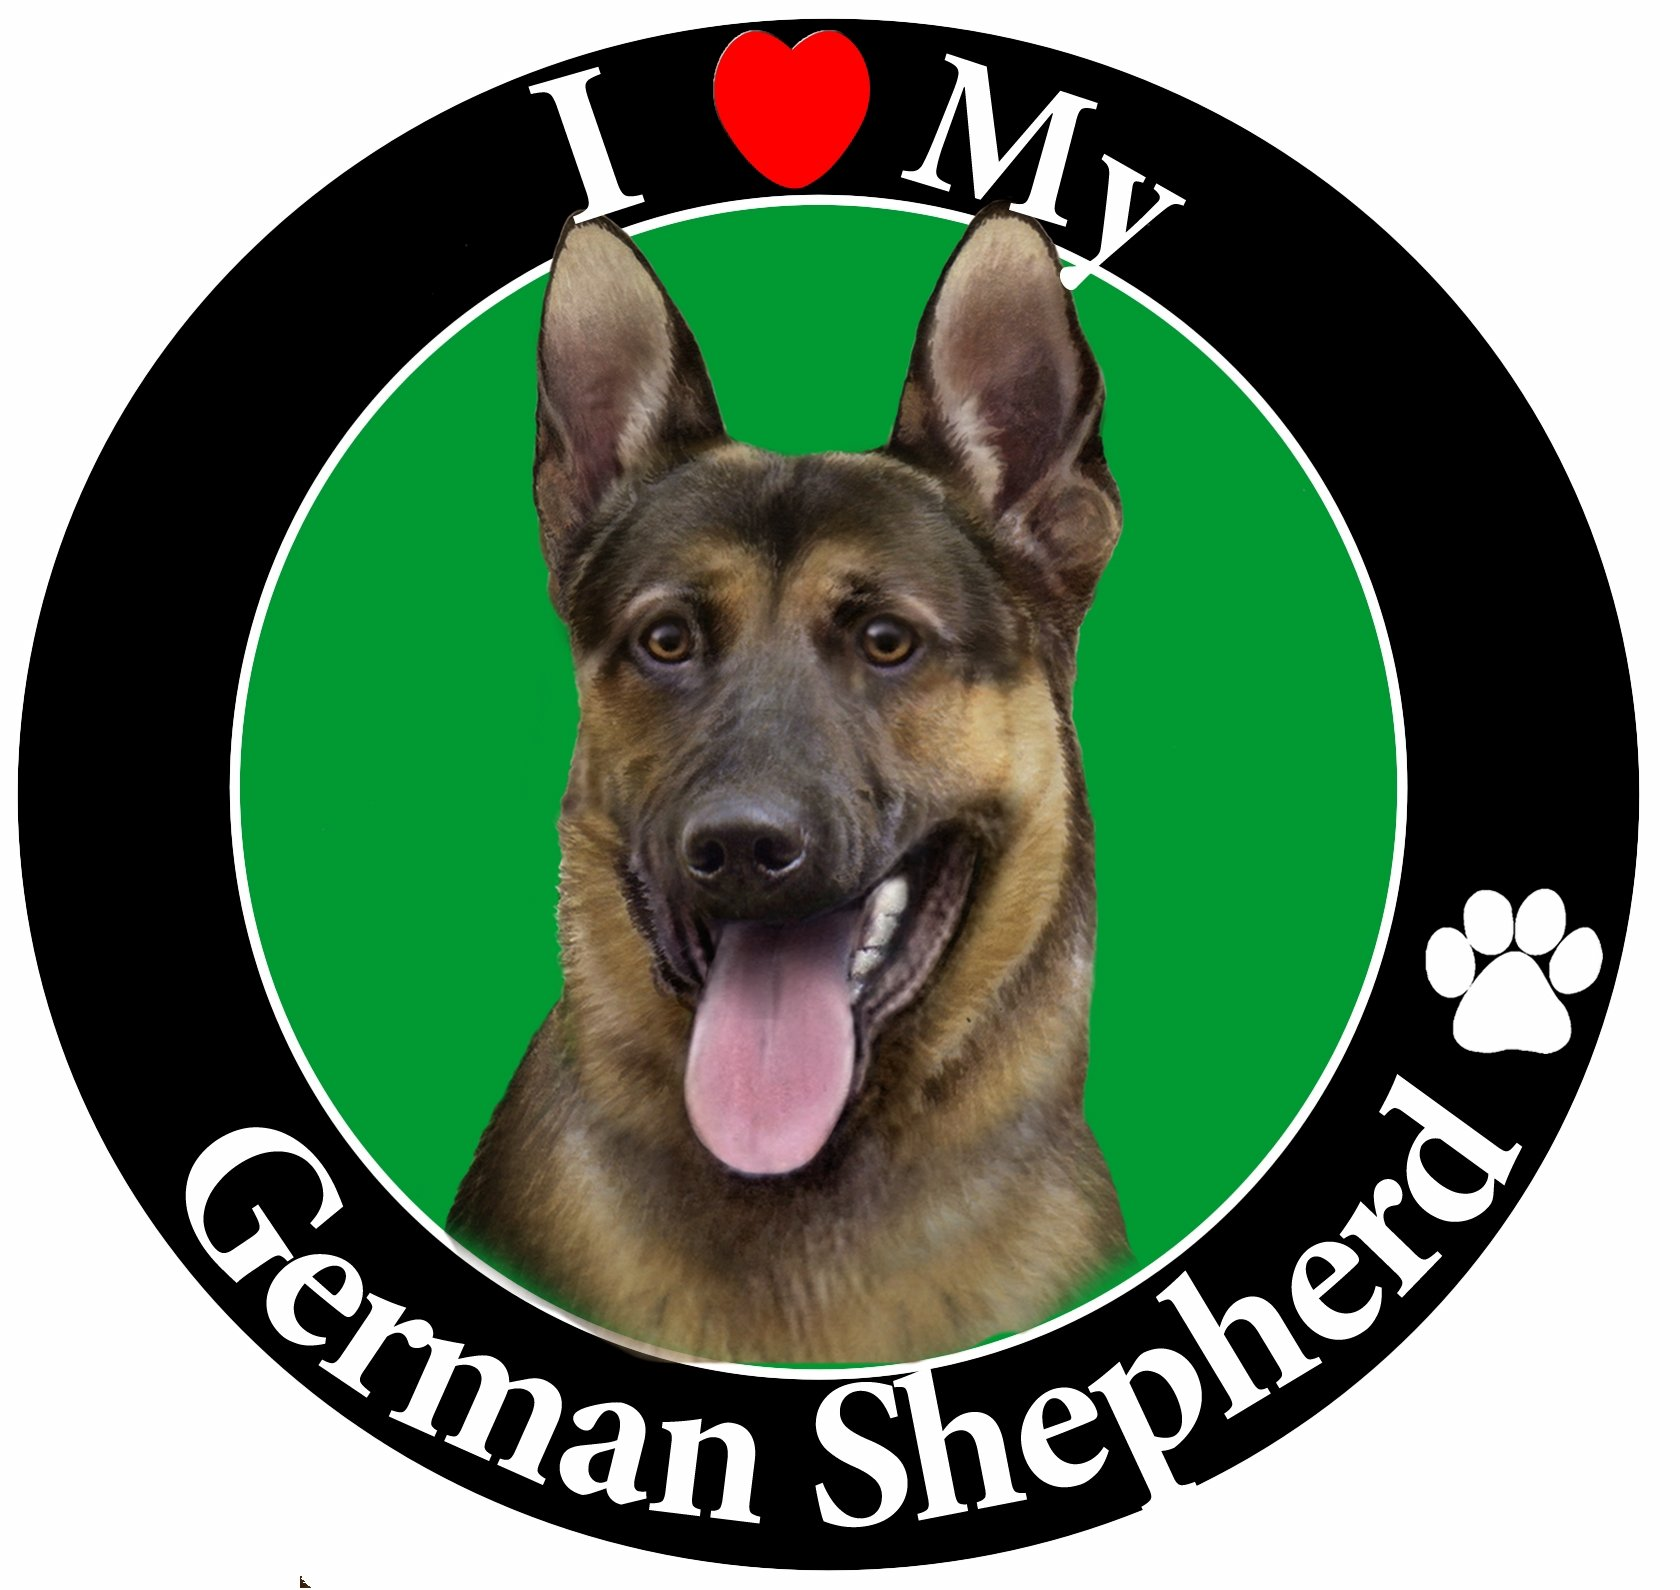 ''I Love My German Shepherd'' Car Magnet With Realistic Looking German Shepherd Photograph In The Center Covered In UV Gloss For Weather and Fading Protection Circle Shaped Magnet Measures 5.25 Inches Diameter